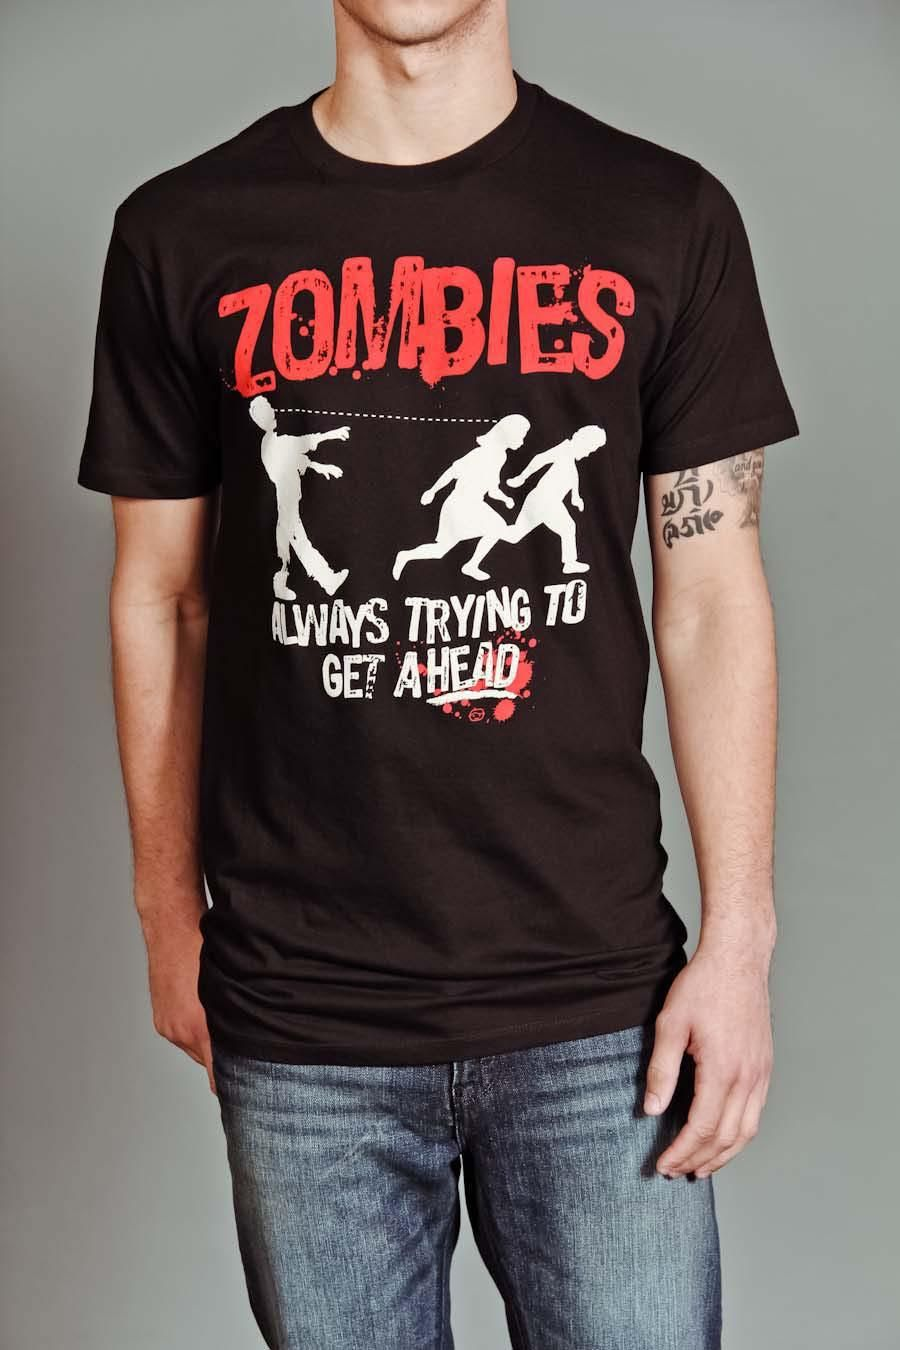 Goodie Two Sleeves Zombies Always Trying T Shirt Zombie T Shirt T Shirts With Sayings Goodie Two Sleeves